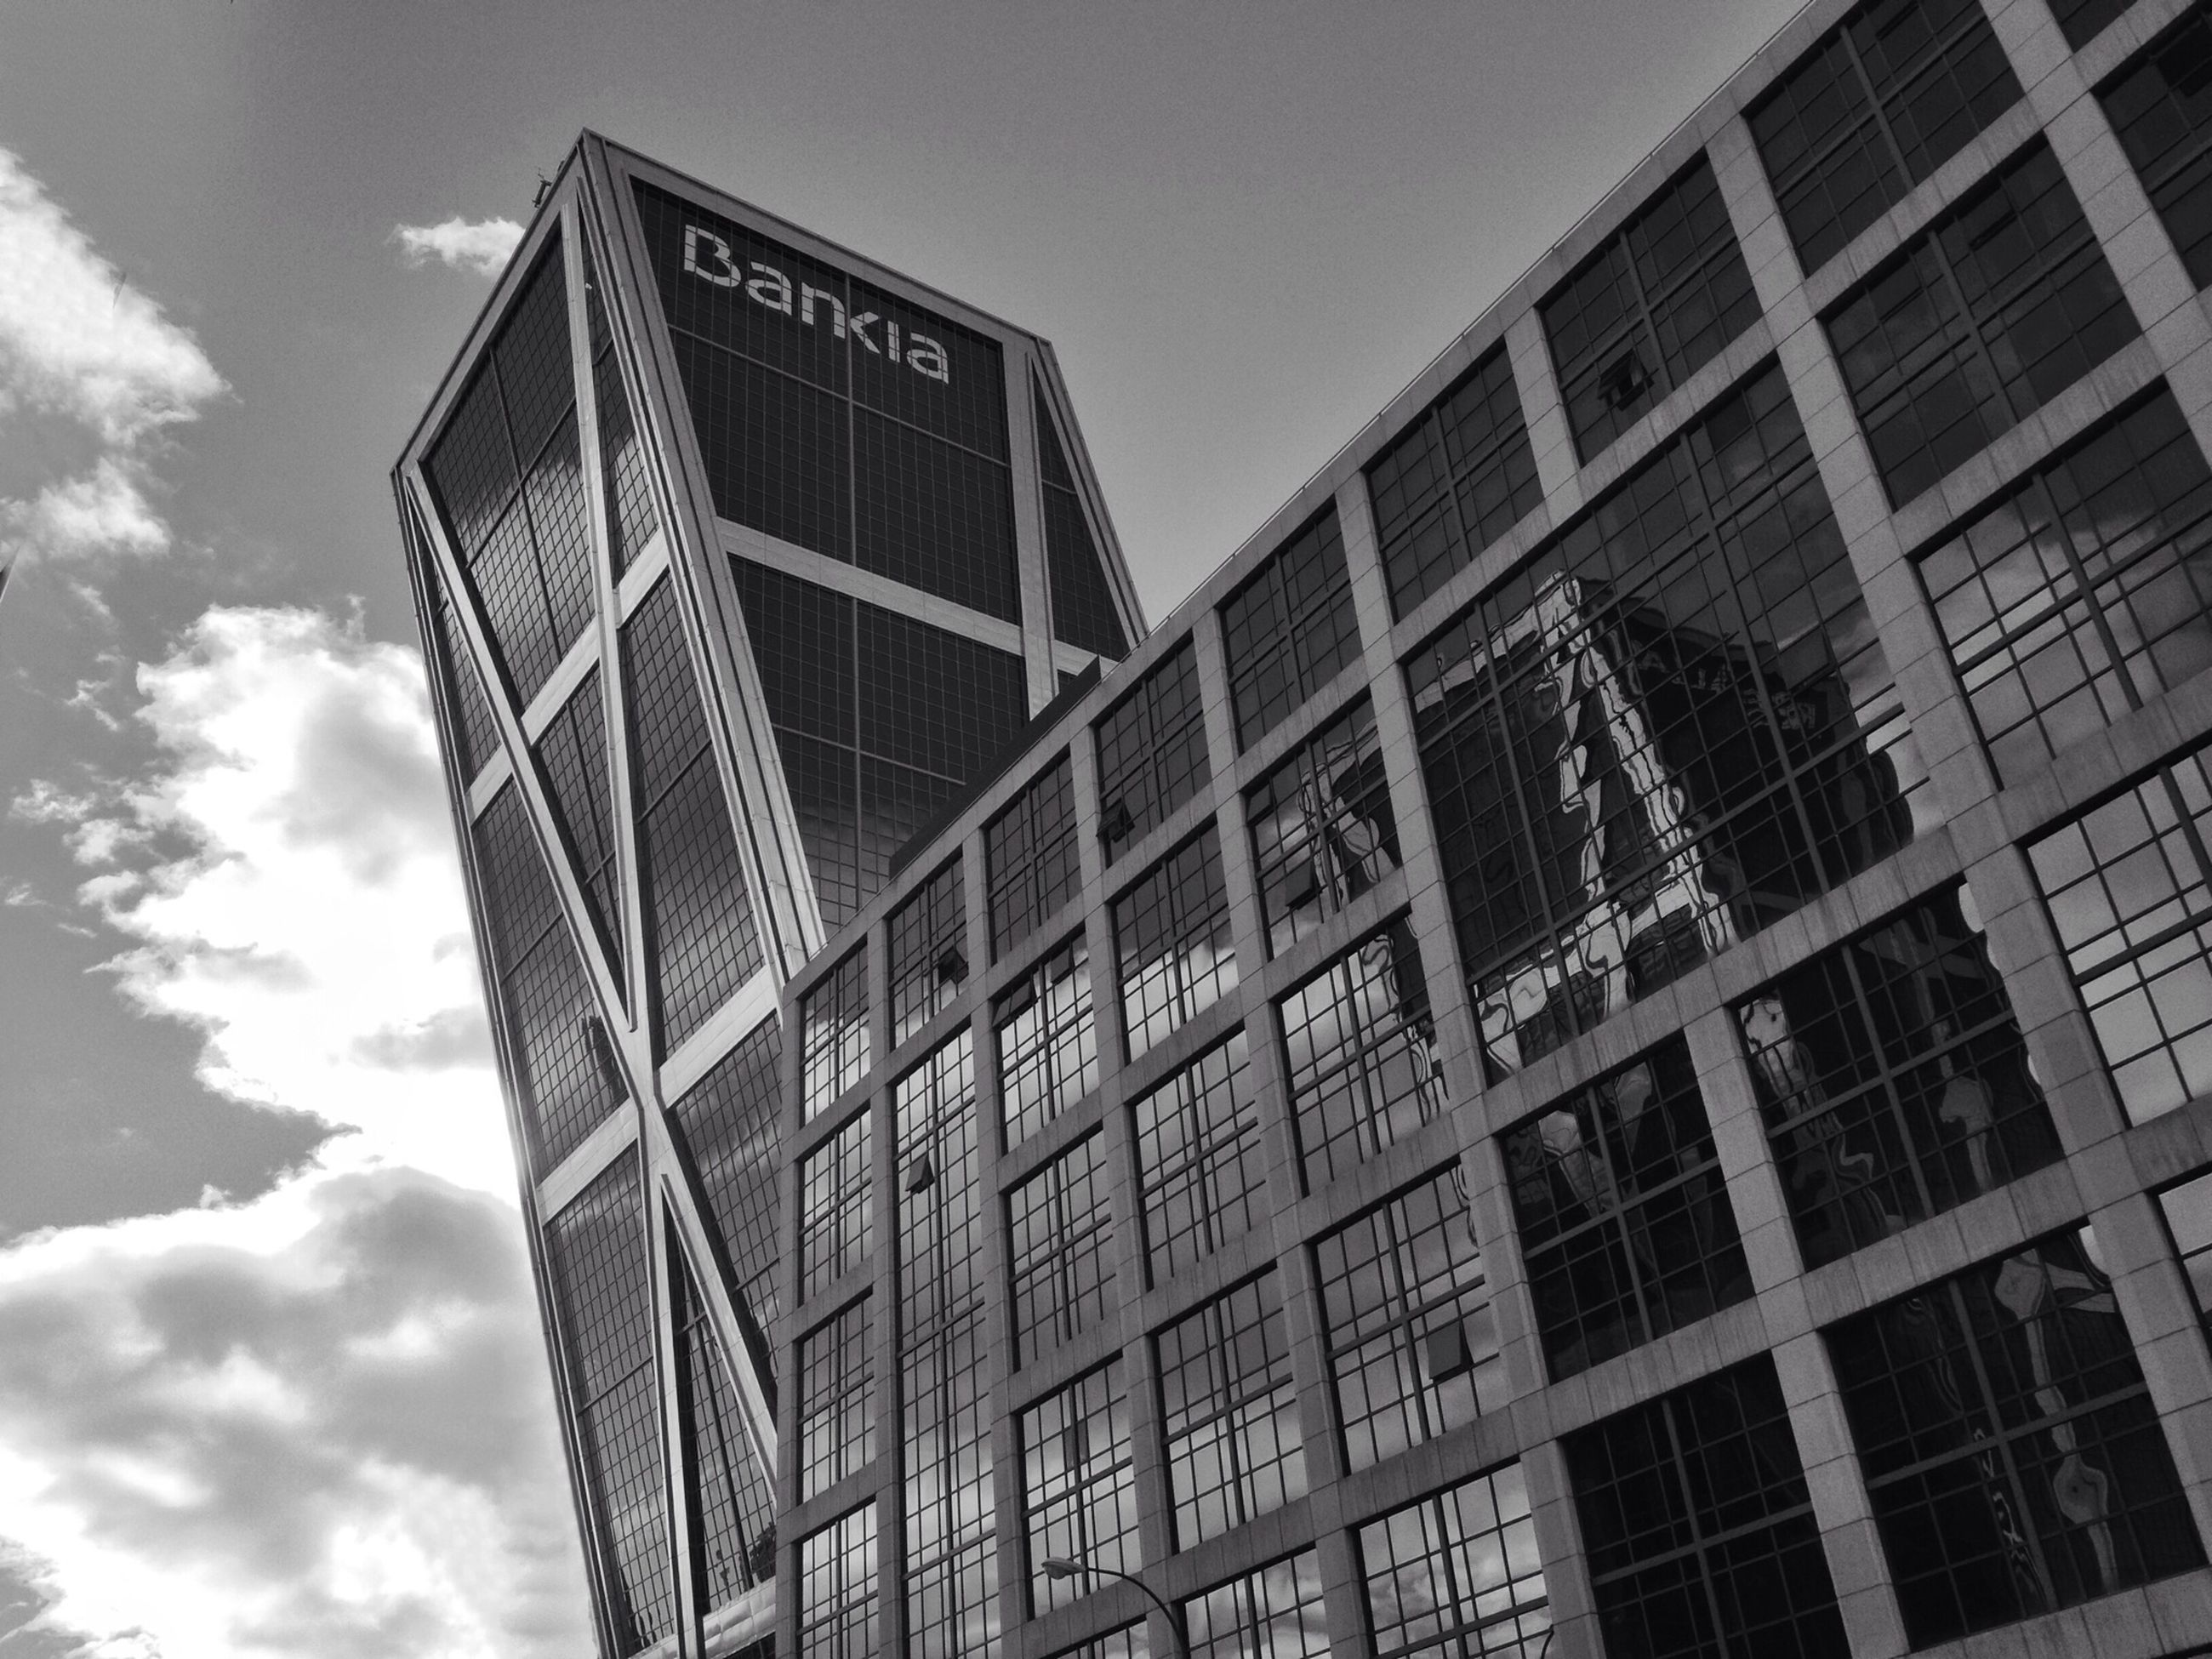 low angle view, architecture, built structure, building exterior, sky, building, modern, glass - material, cloud - sky, window, office building, reflection, day, tall - high, city, tower, outdoors, cloud, no people, pattern